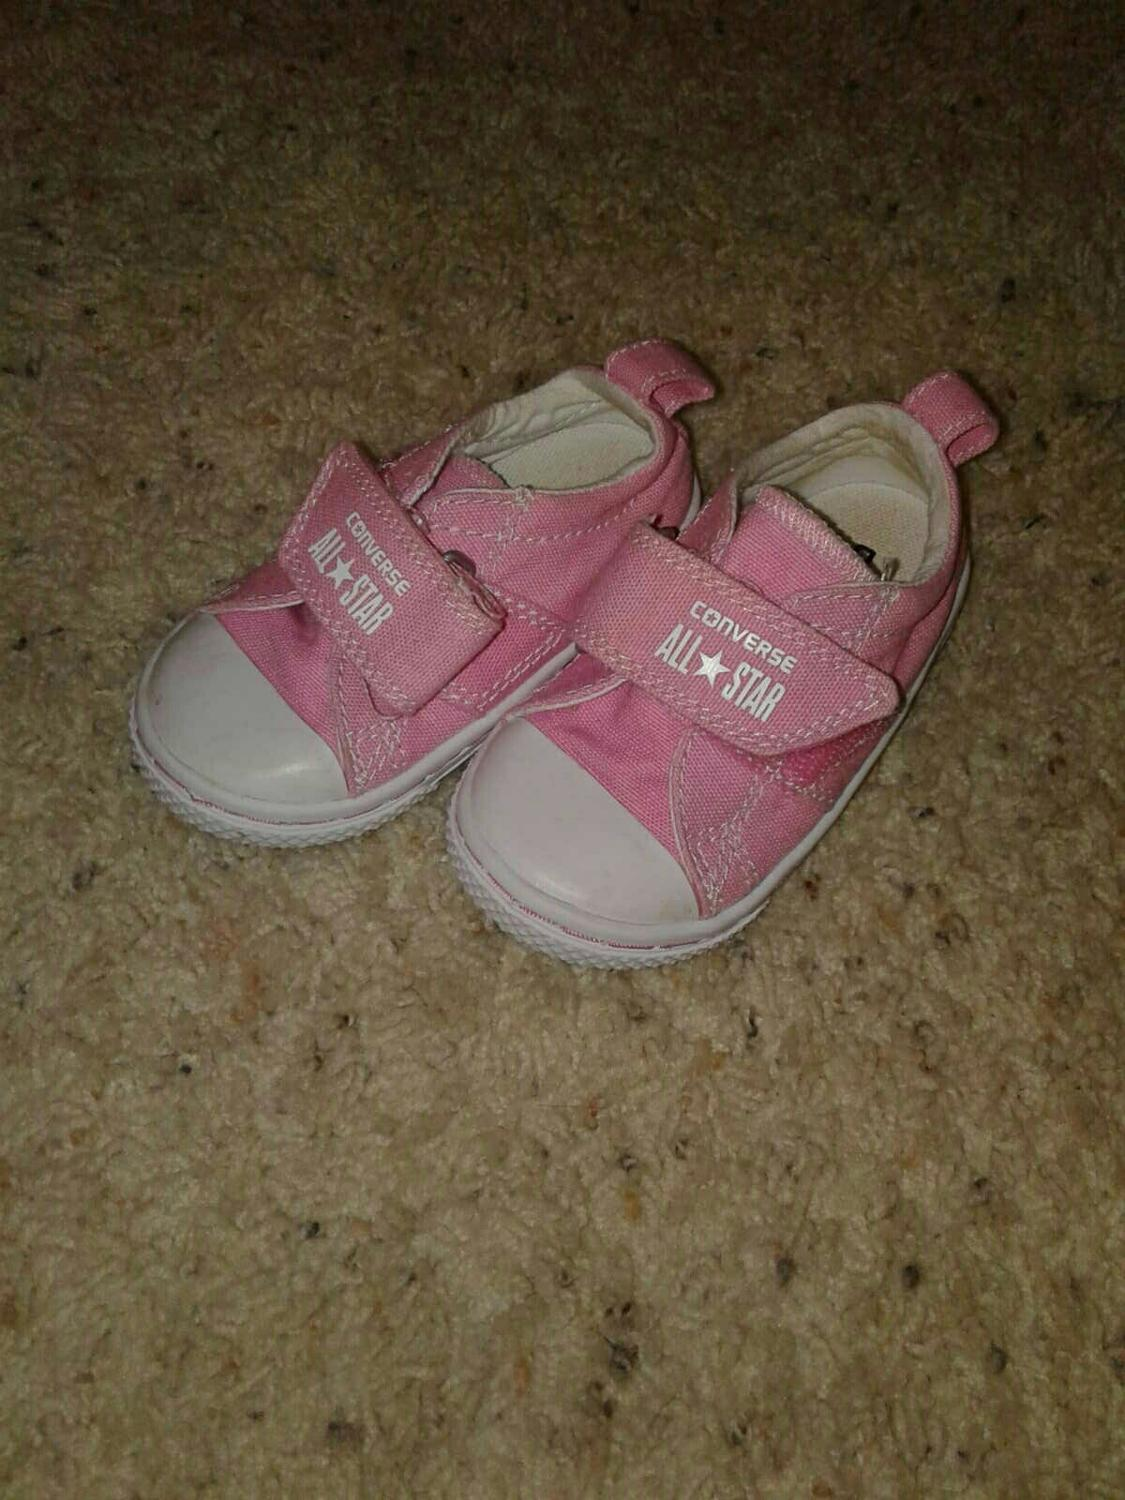 Find More 4 Pairs Of Size 6 Little Girls Shoes For Sale At